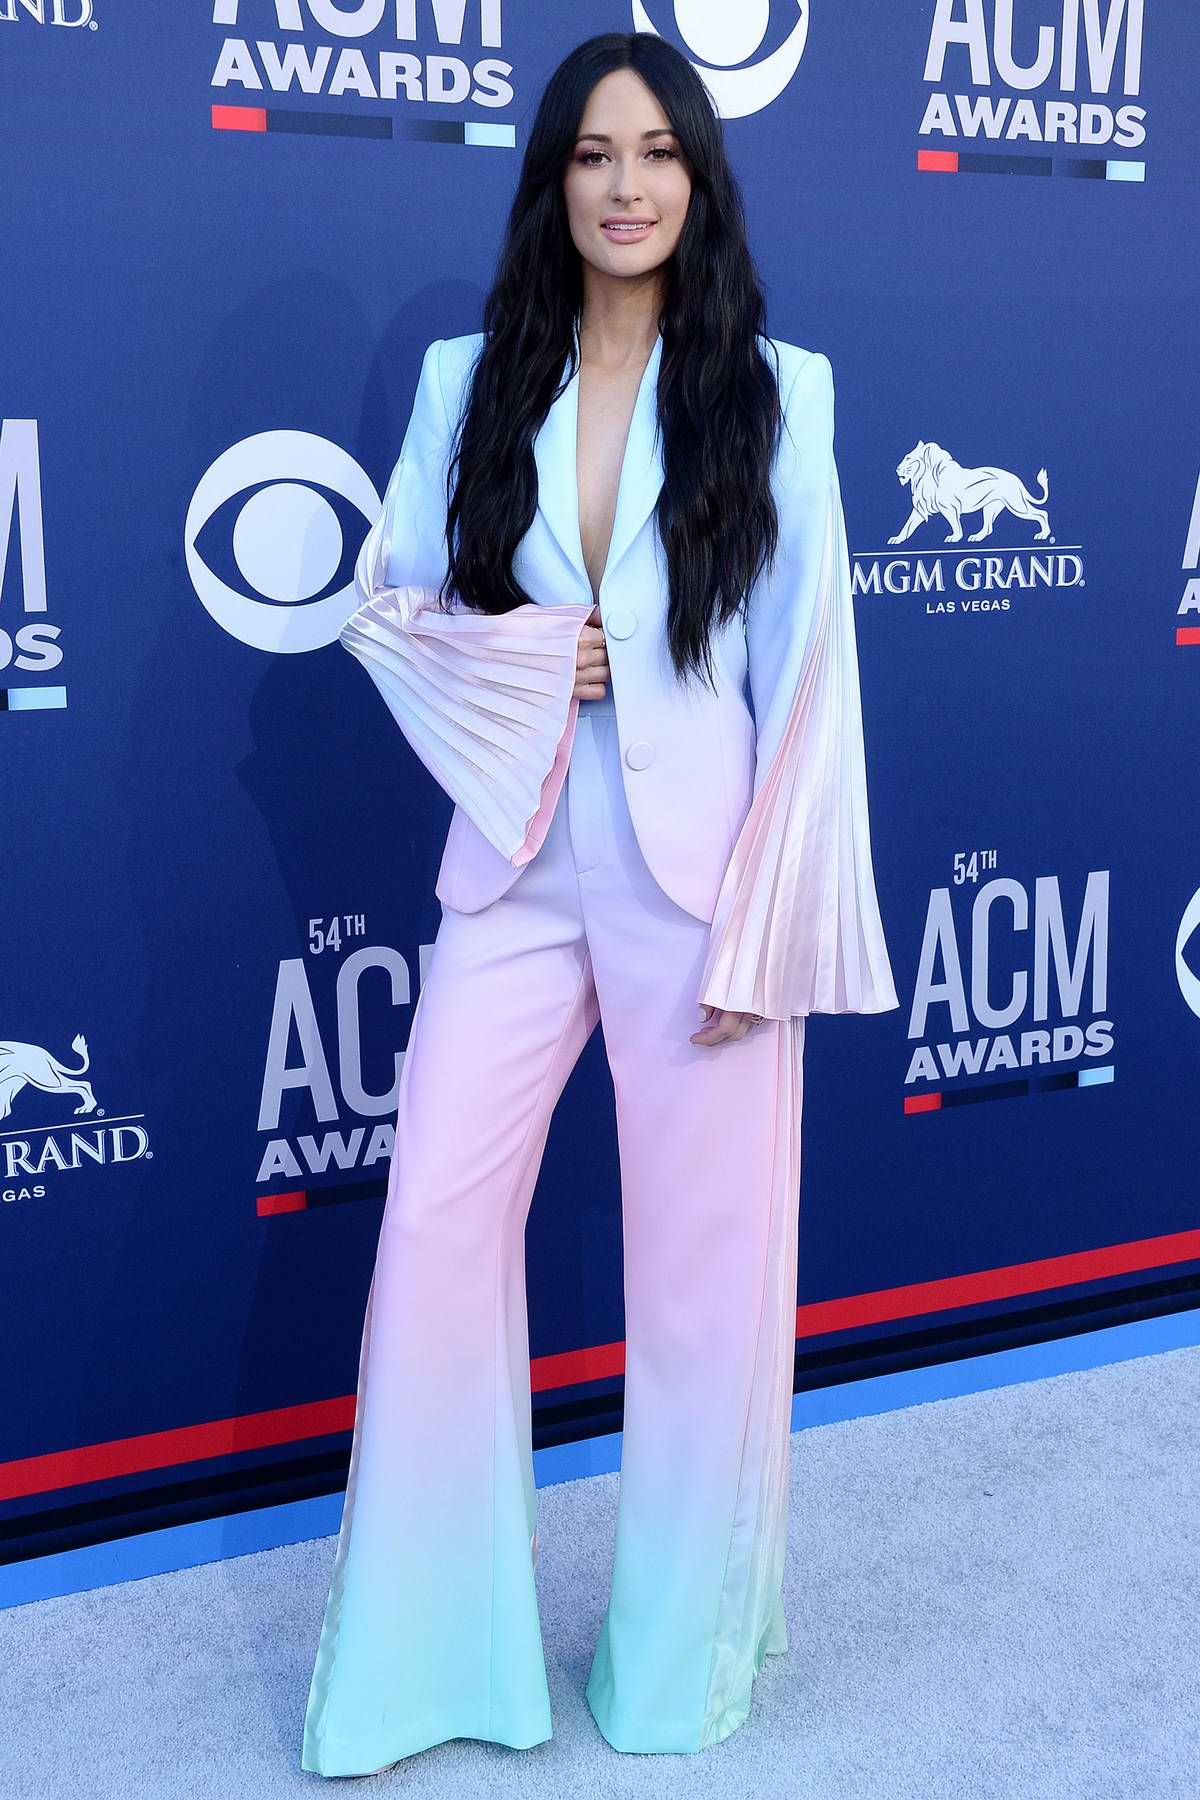 Kacey Musgraves attends the 54th Academy of Country Music Awards (ACM 2019) at MGM Grand in Las Vegas, Nevada